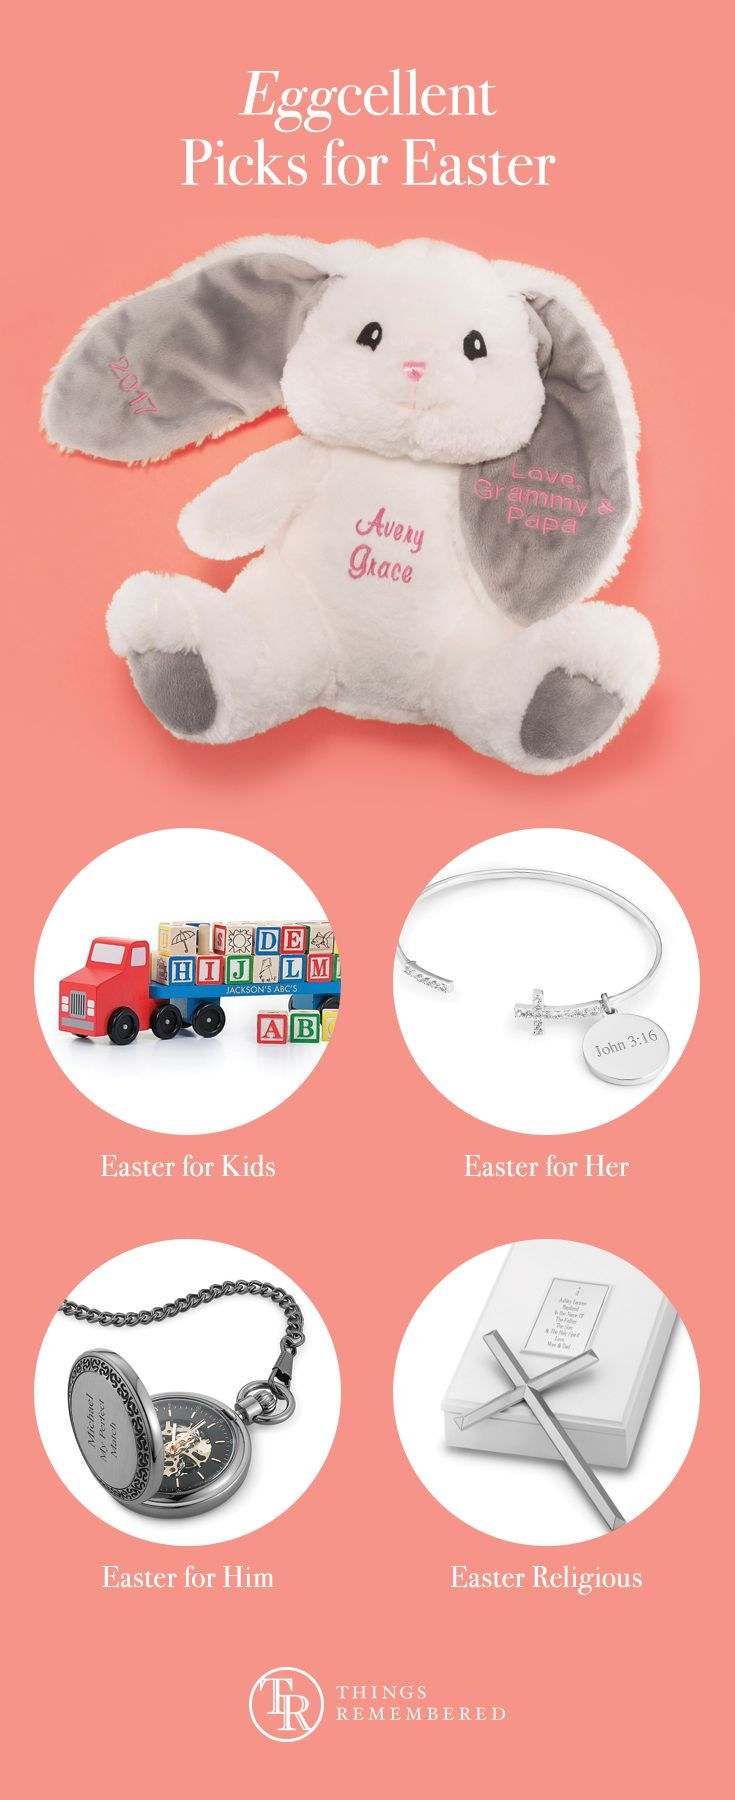 38 best gifts for kids images on pinterest kids gifts fan in personalized gifts are great to fill easter baskets if all kinds check out these easter negle Image collections